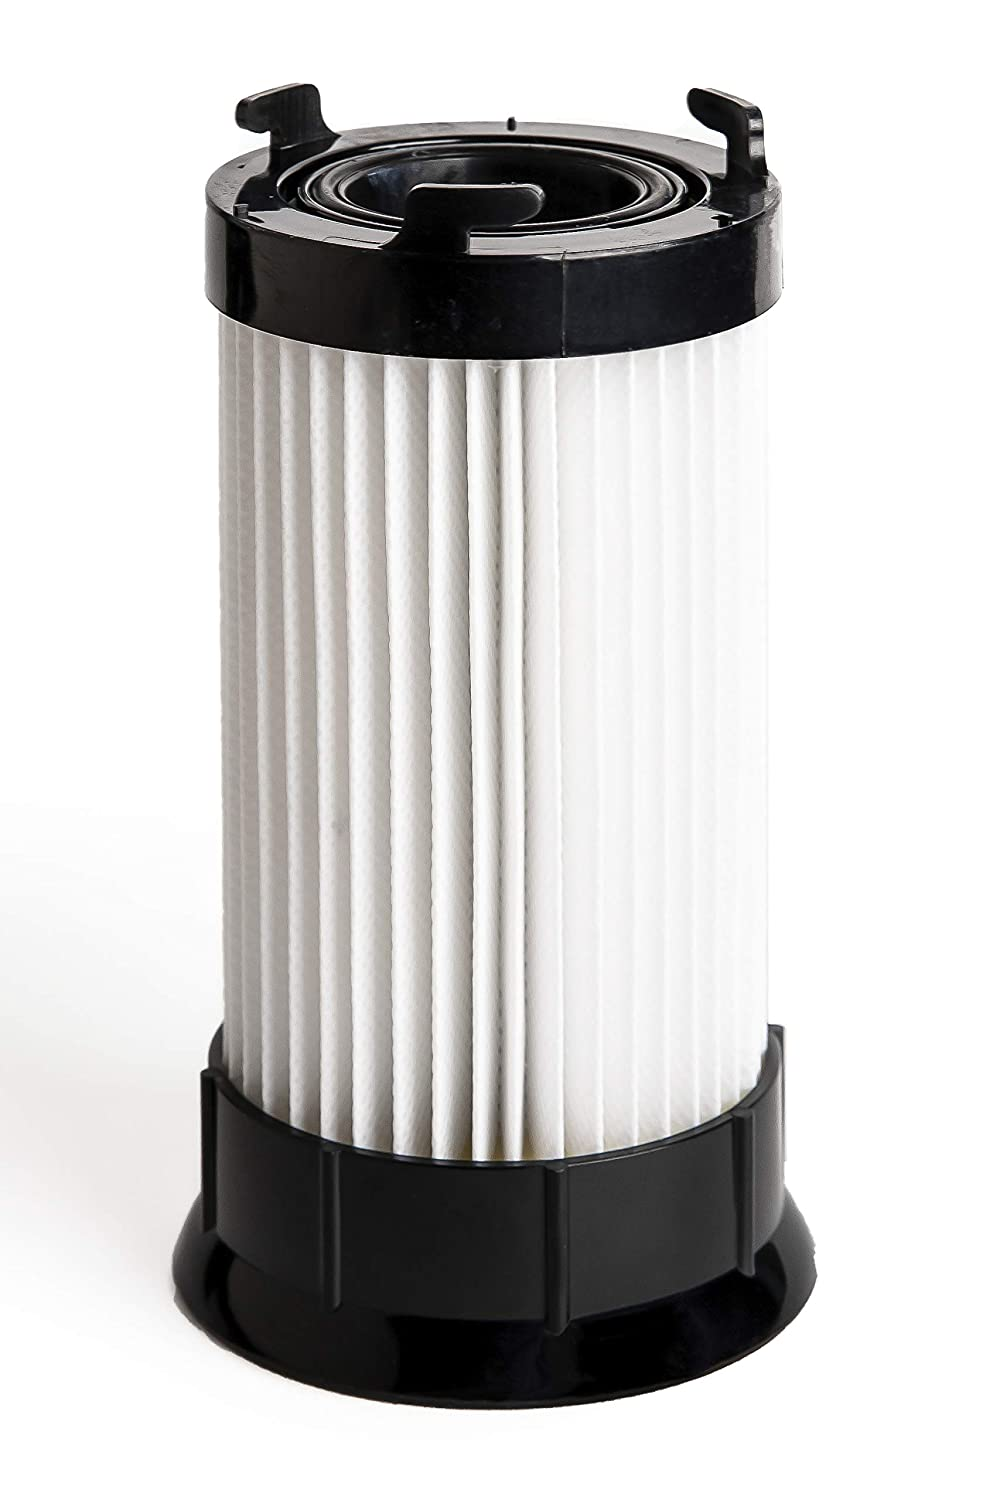 Green Label for Eureka Type DCF4 / DCF18 Filter for 4700 and 5500 Series Eureka Upright Vacuum Cleaners Compares to DCF-4, DCF-18, 63073C, 62132, 63073, 3690, 18505. Fits: 4700, 5500 Series